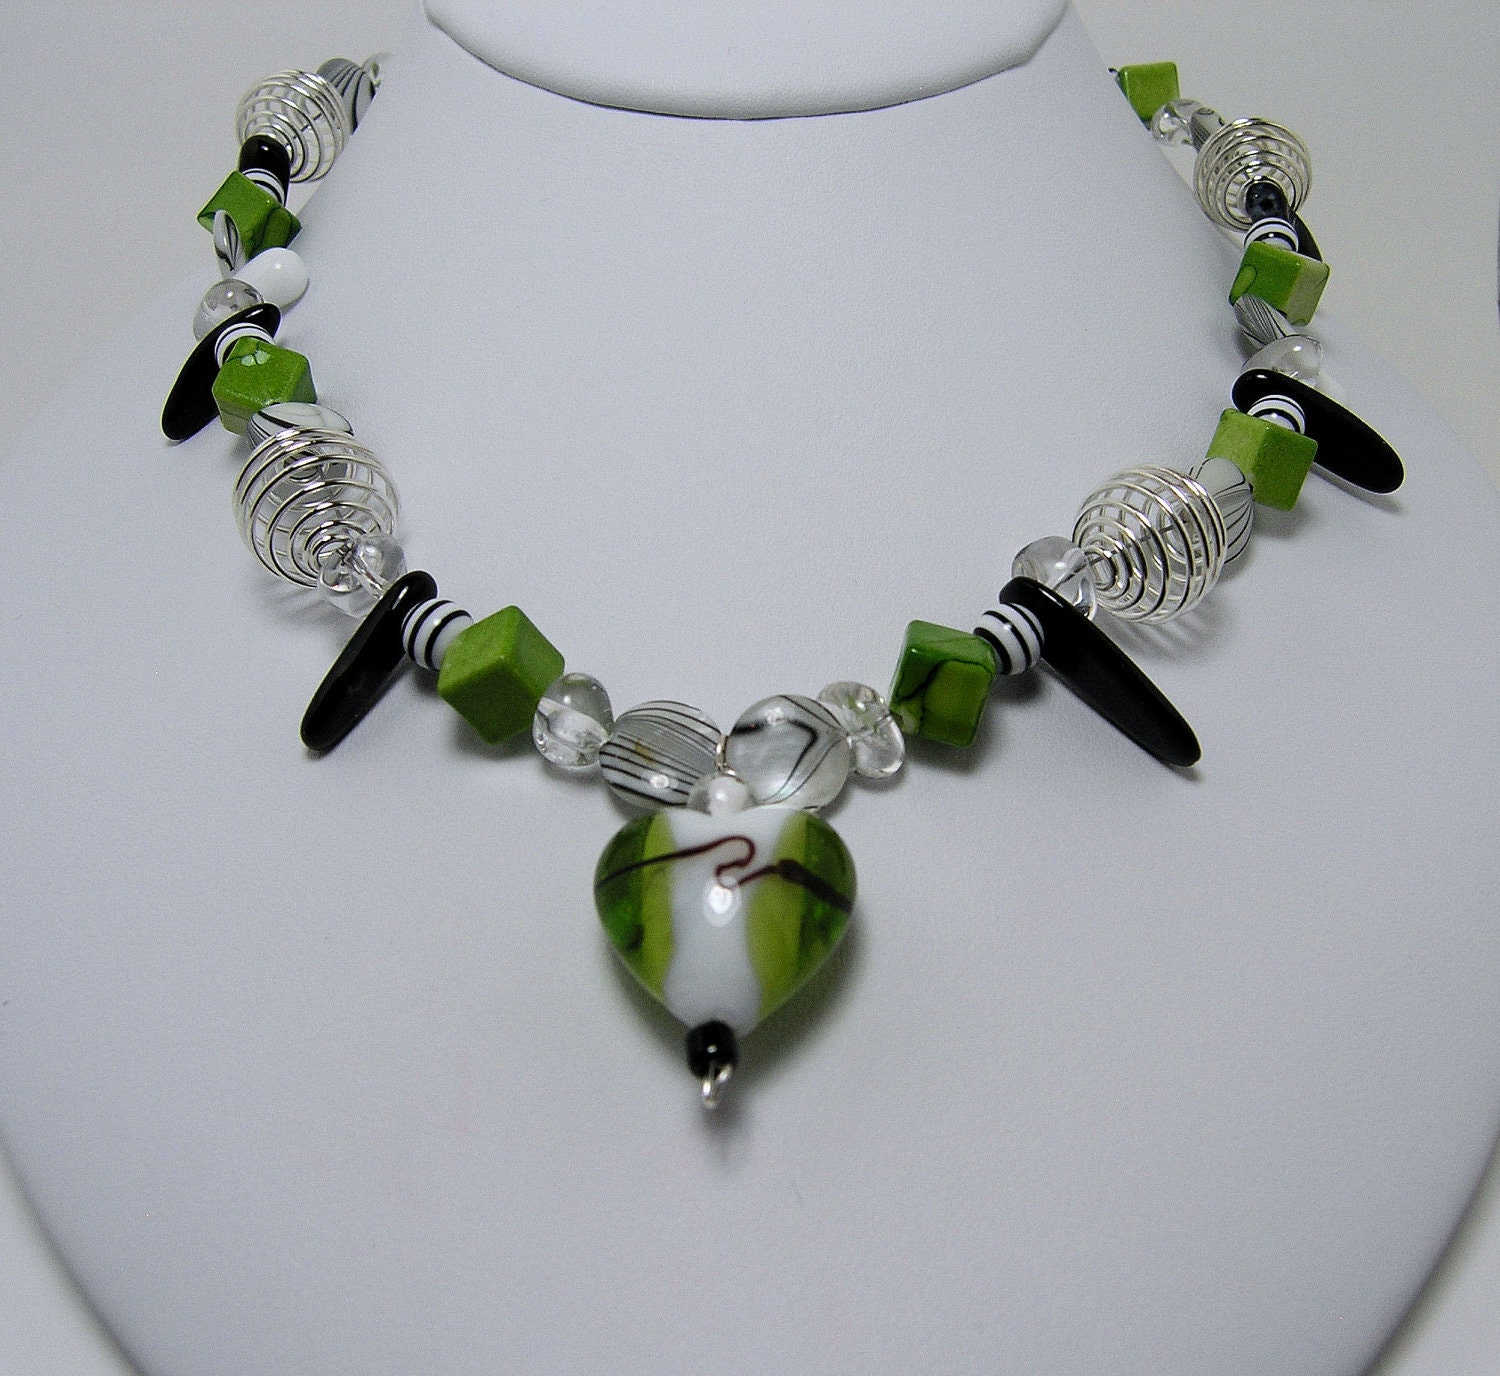 Green Apple Heart necklace with handblown green heart pendant, acrylic cube beads, sterling spirals